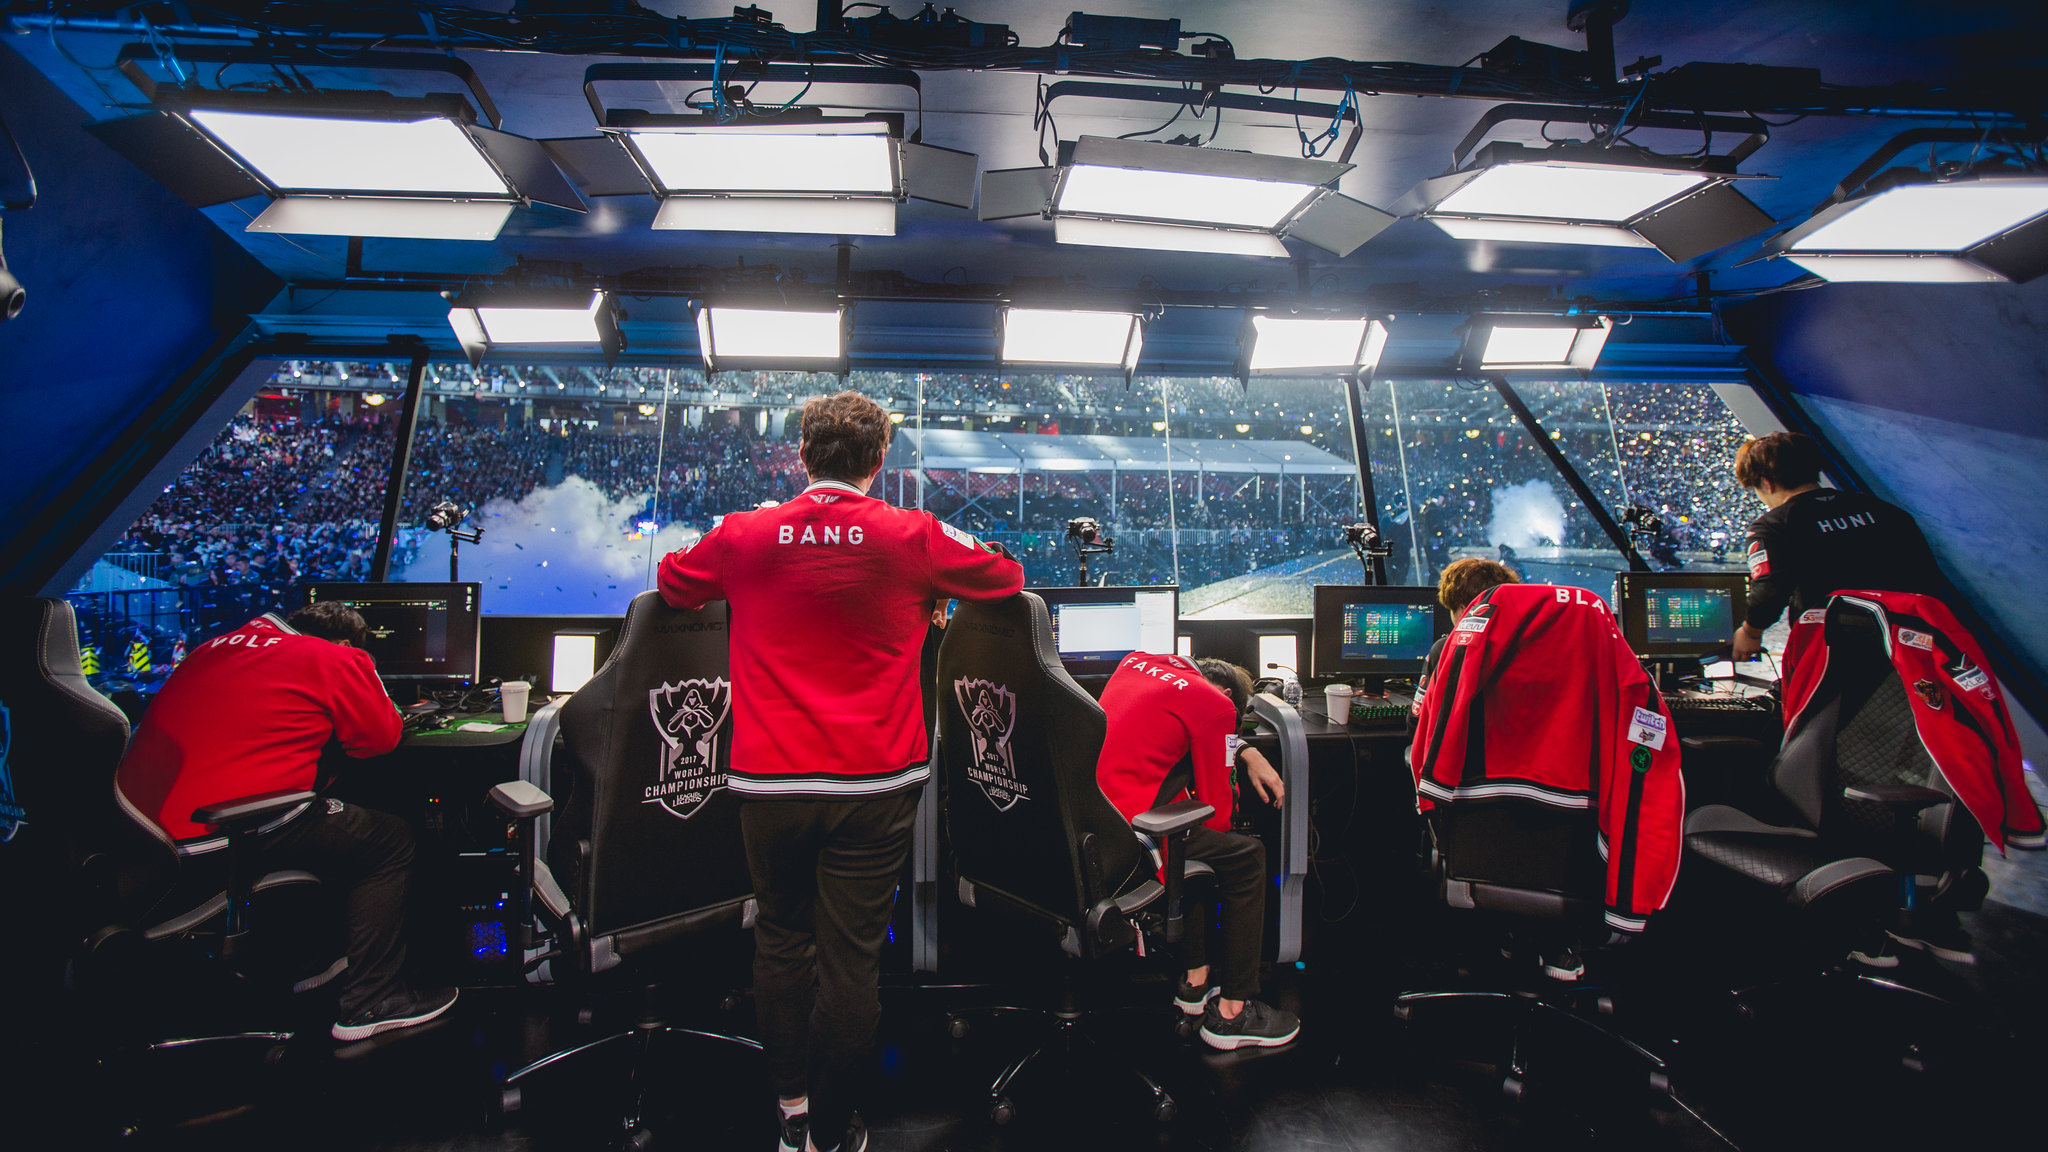 A team of League of Legends players inside their tournament booth at Worlds